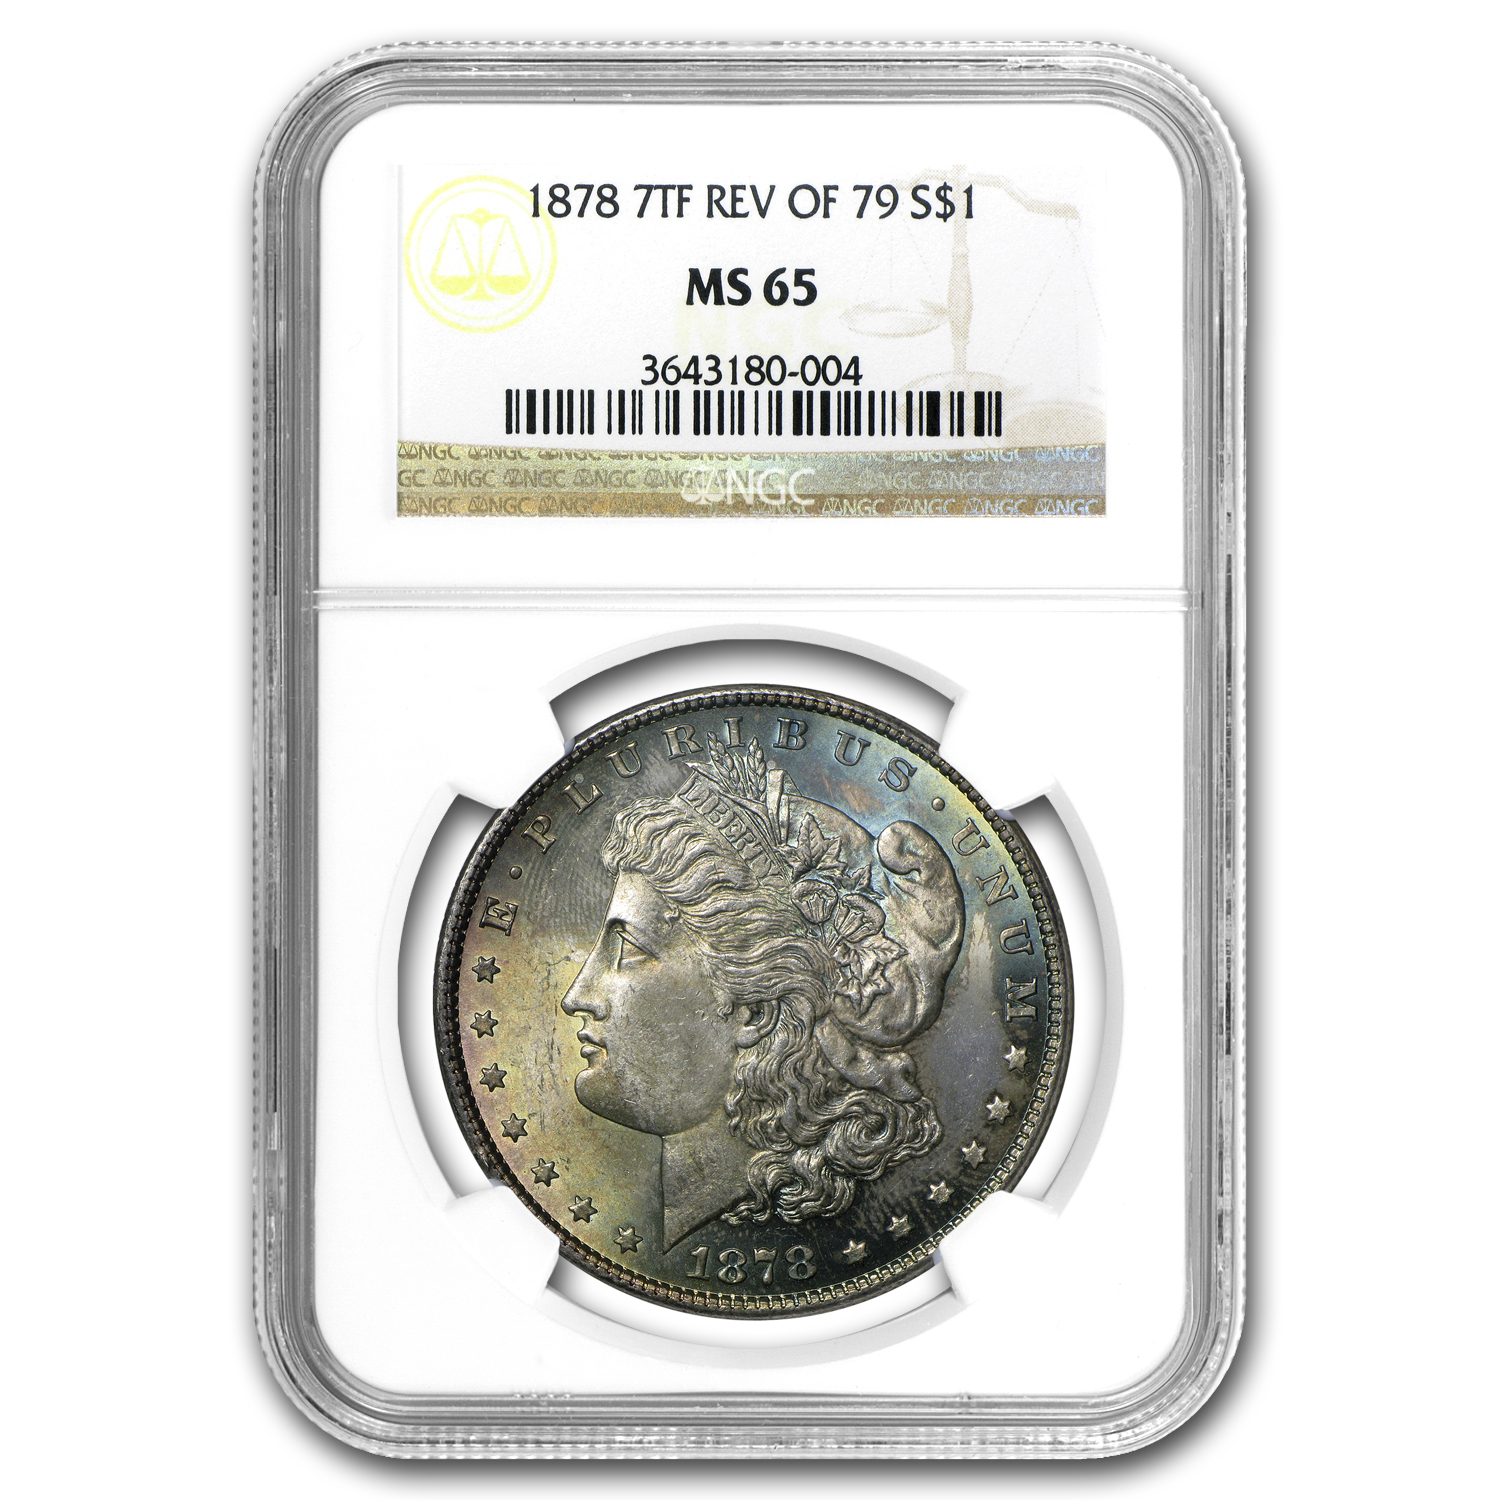 1878 Morgan Dollar 7 TF Rev of 79 MS-65 NGC (Toned)